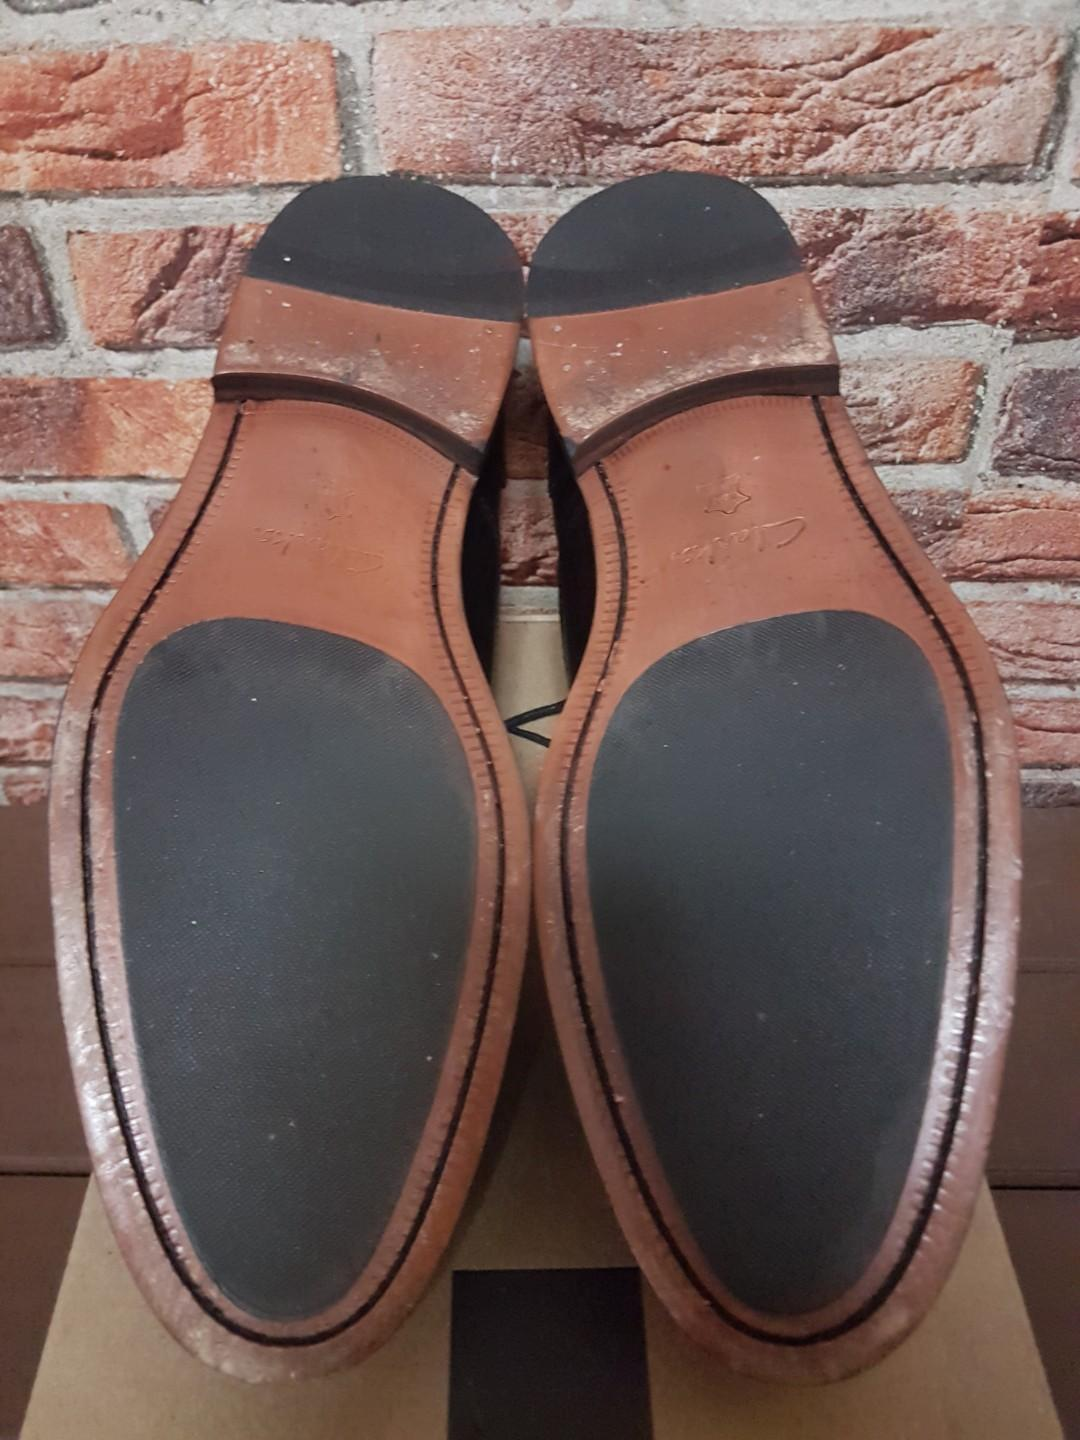 clarks coling boss black leather